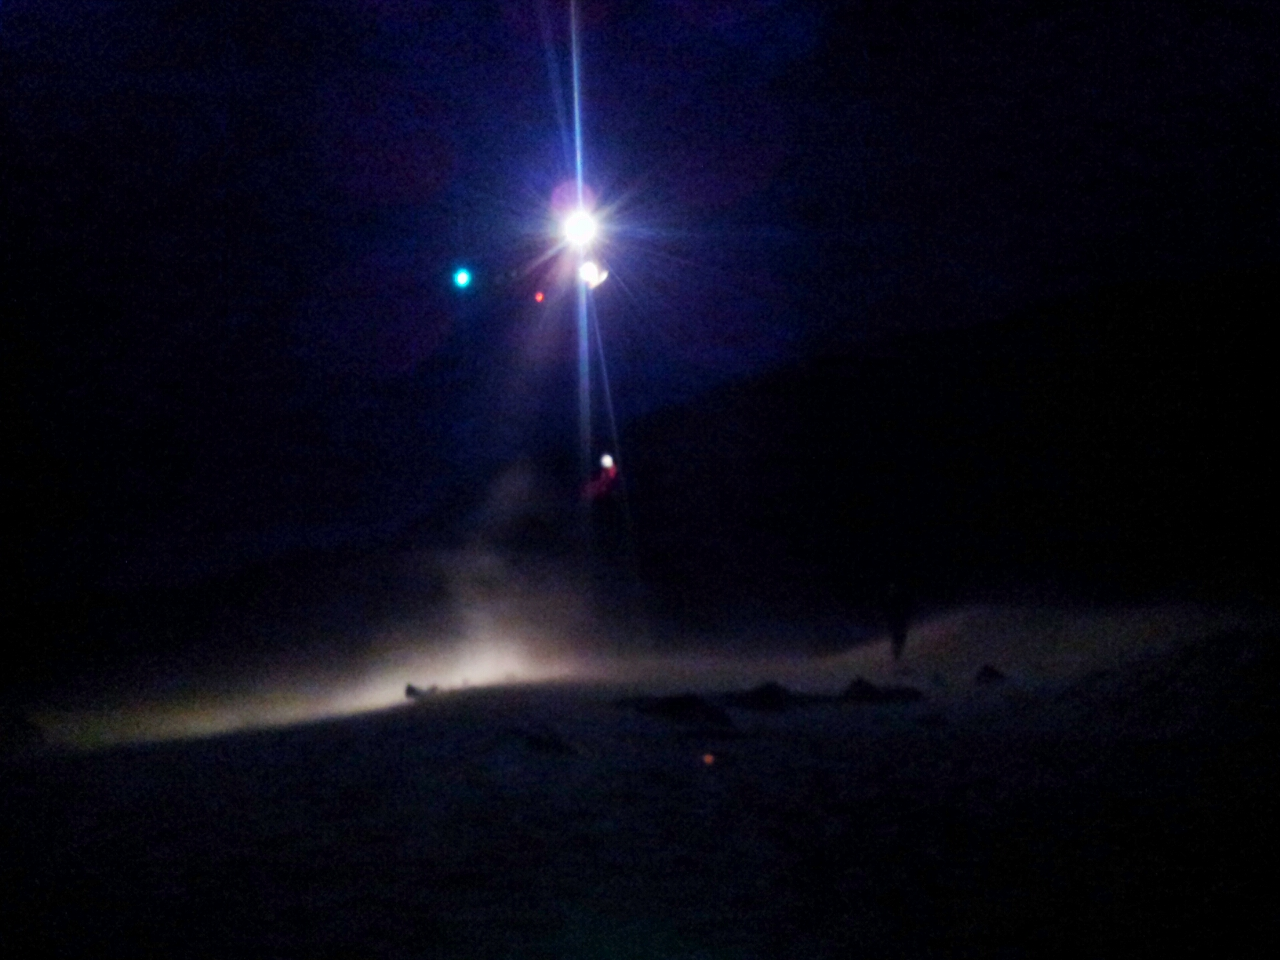 Rescue helicopter coming in at night, lights on and sand blowing up all around